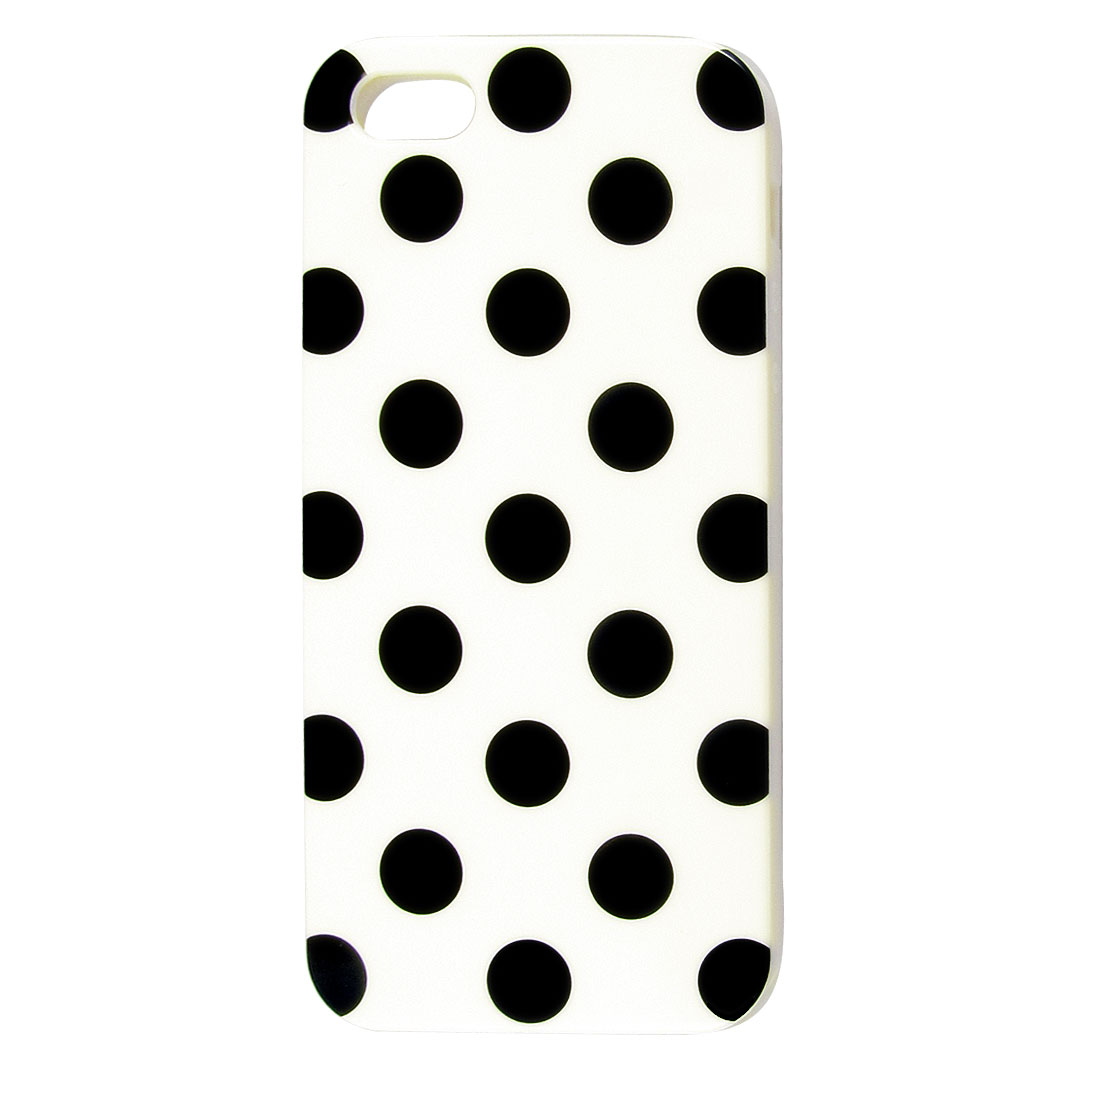 Black Polka Dot White TPU Phone Case Cover for Apple iPhone 5 5G 5th